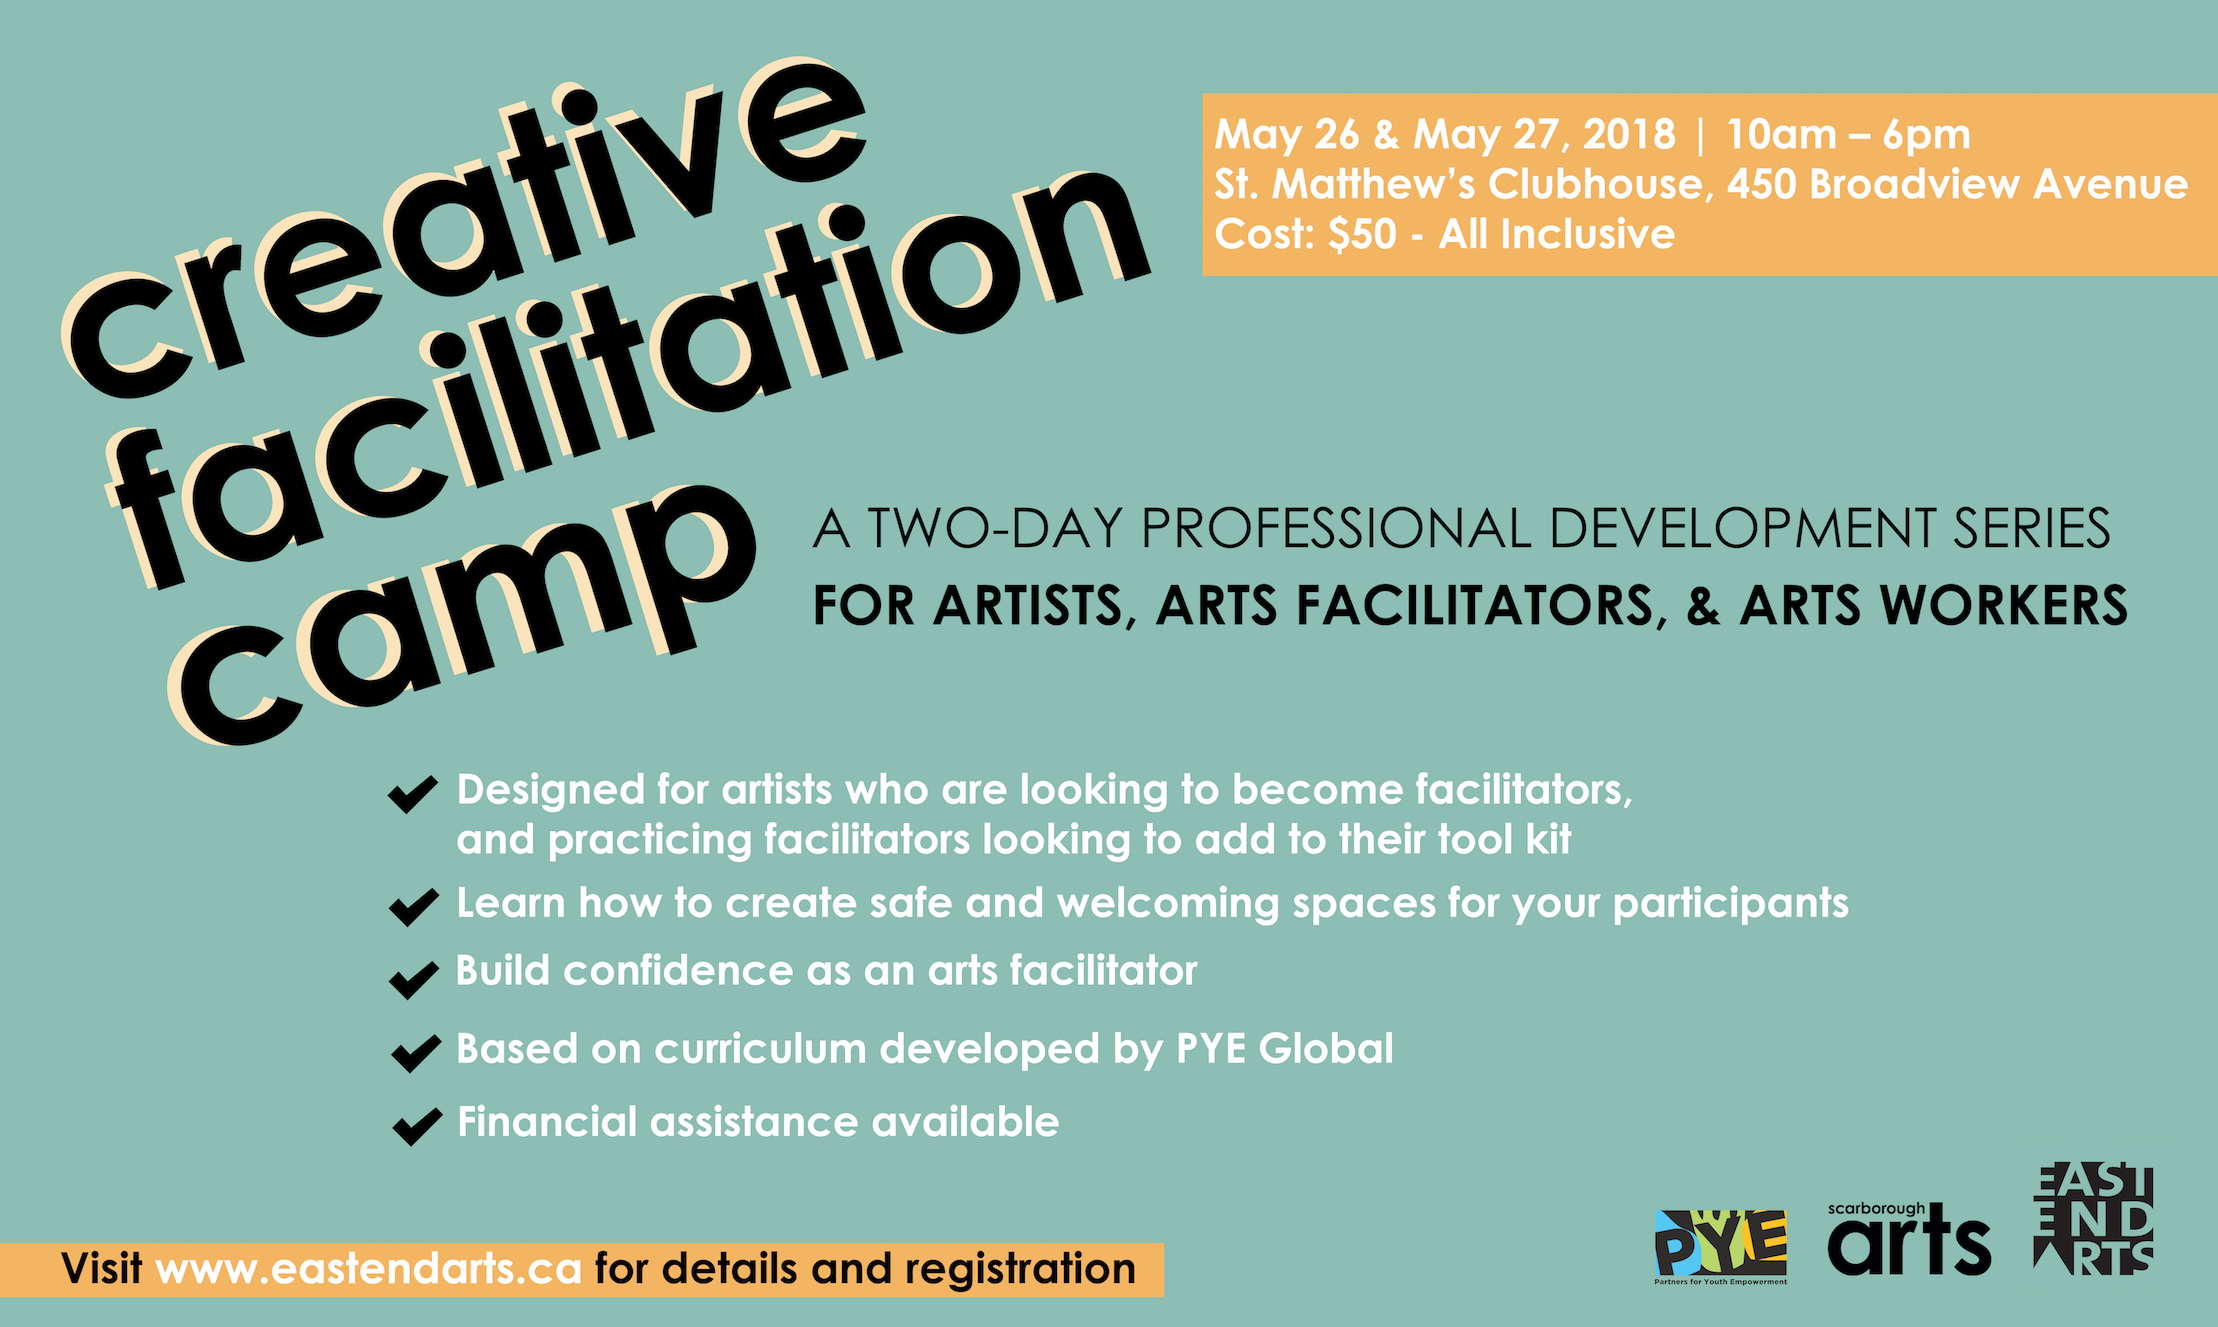 Register for Creative Facilitation Camp from May 26 - 27